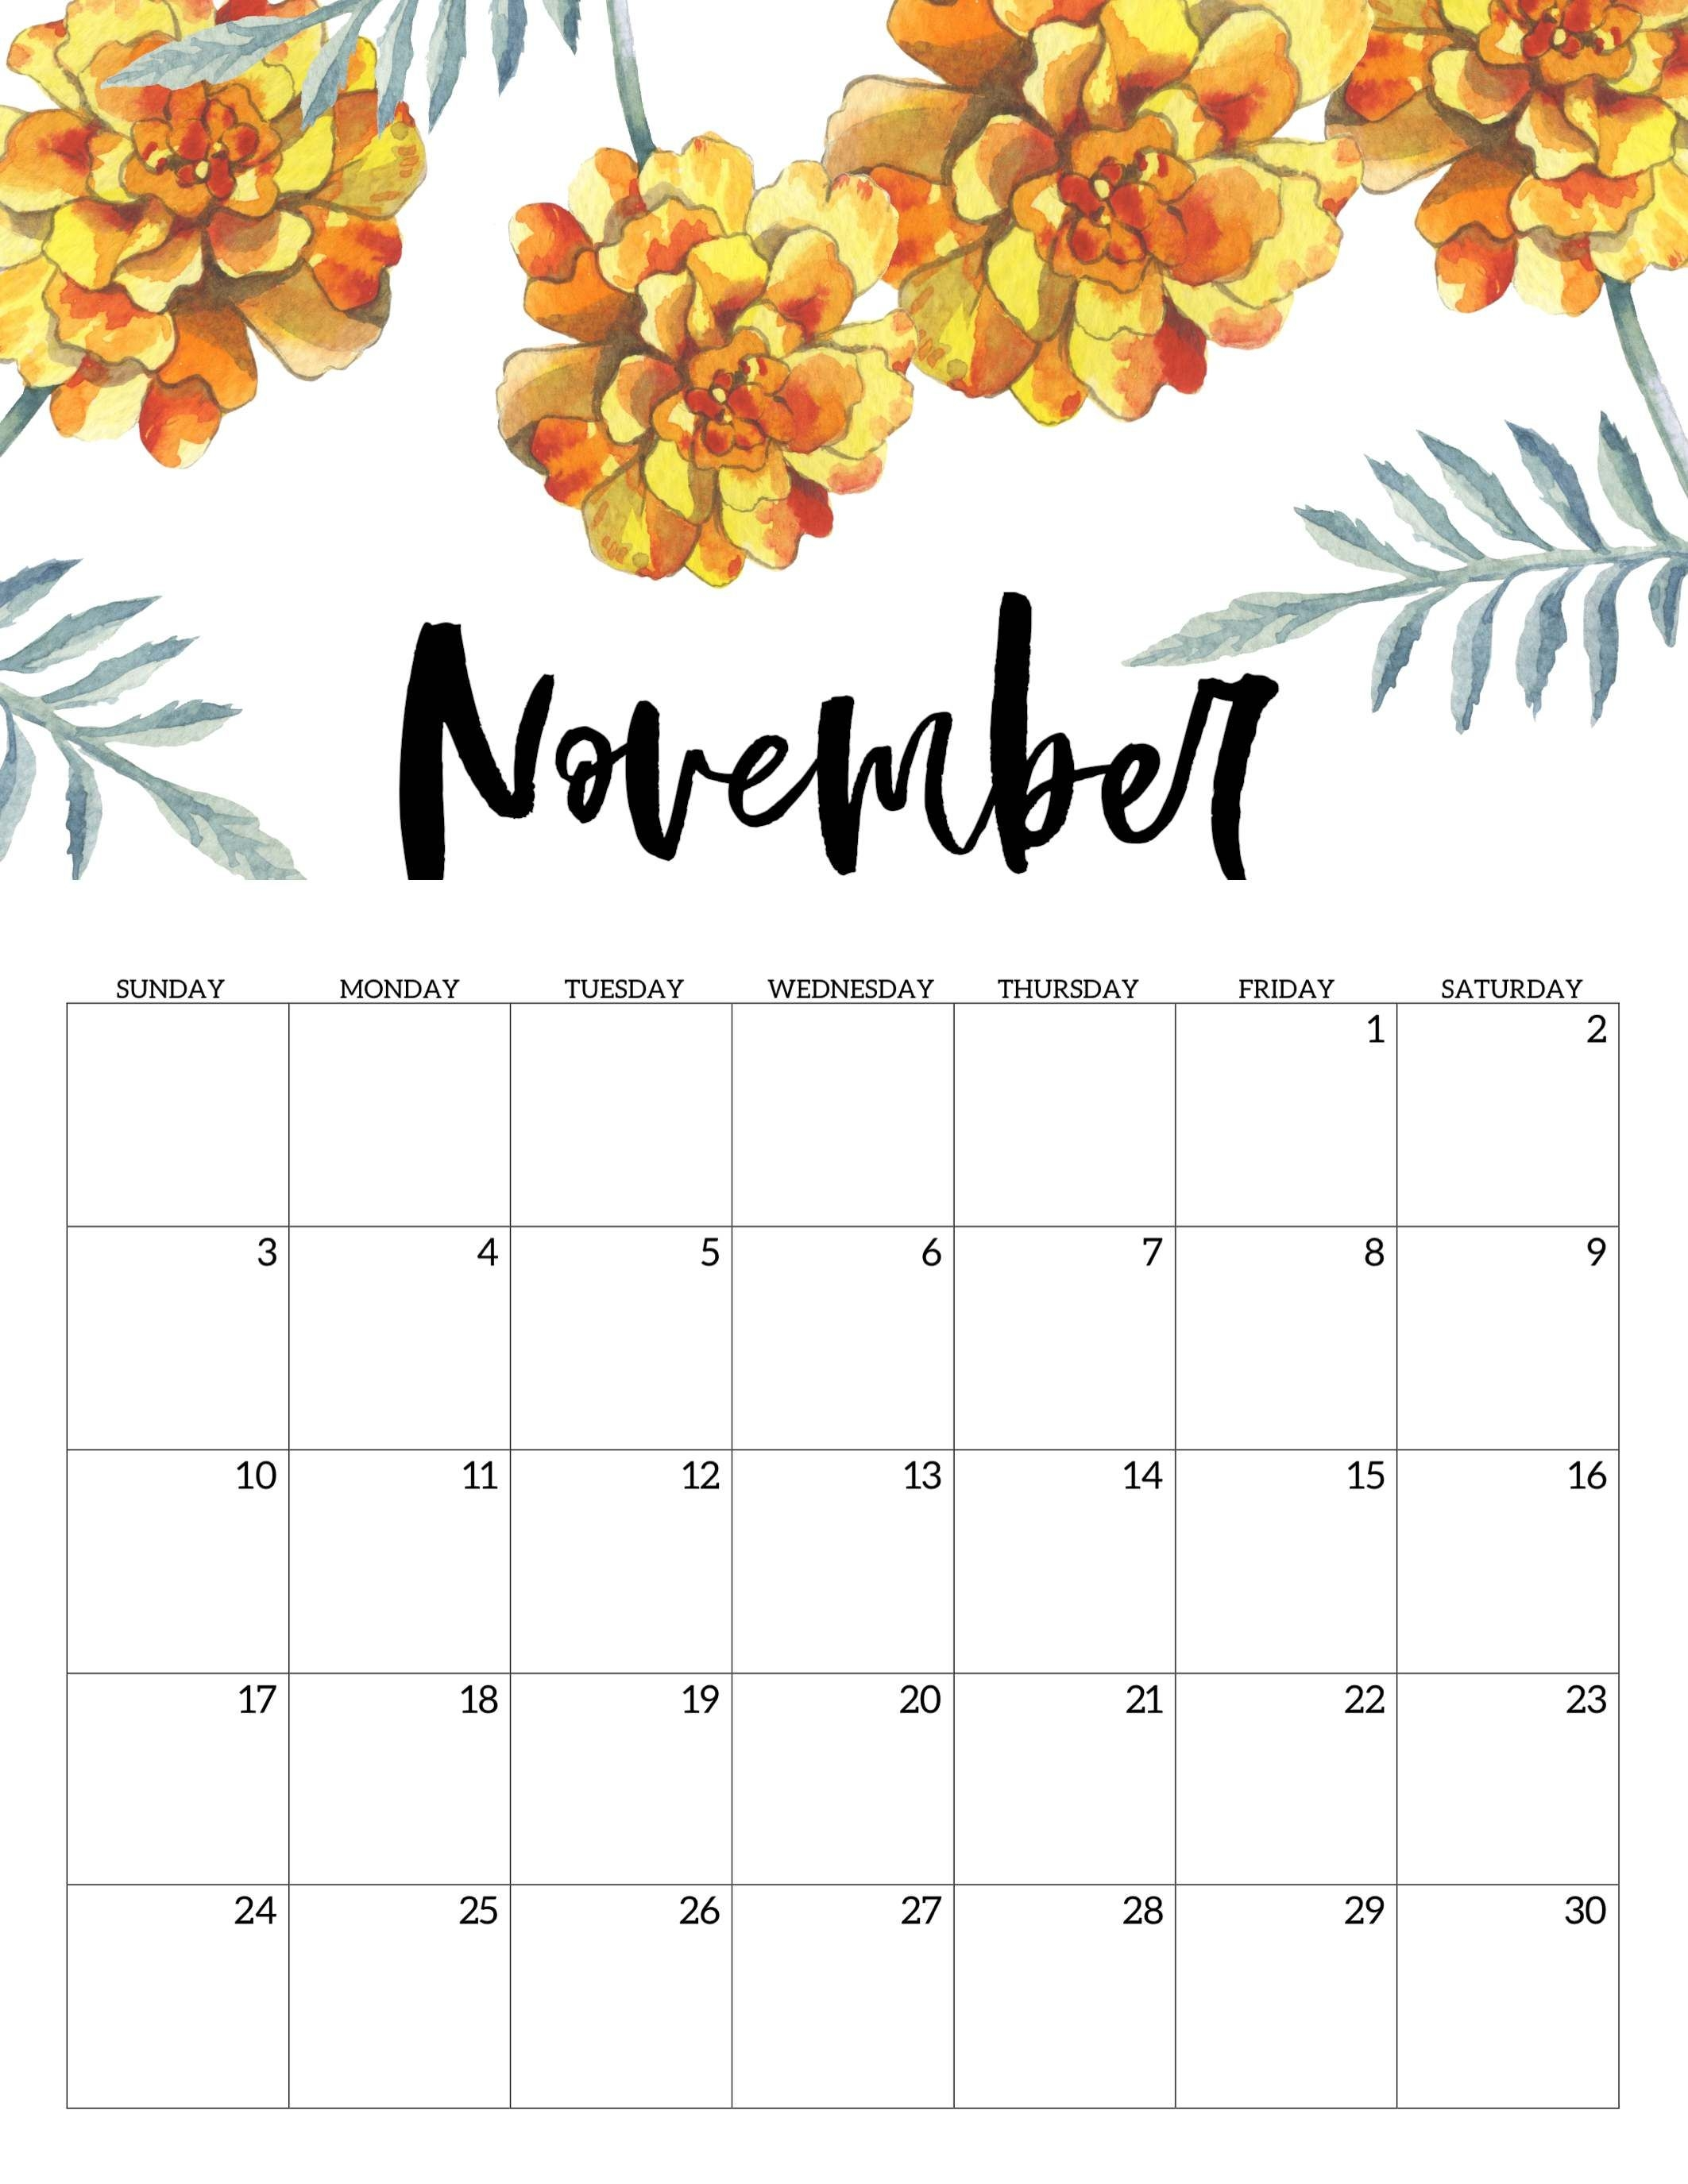 November 2019 Wall Calendar Printable 2019 Calendars Pinterest